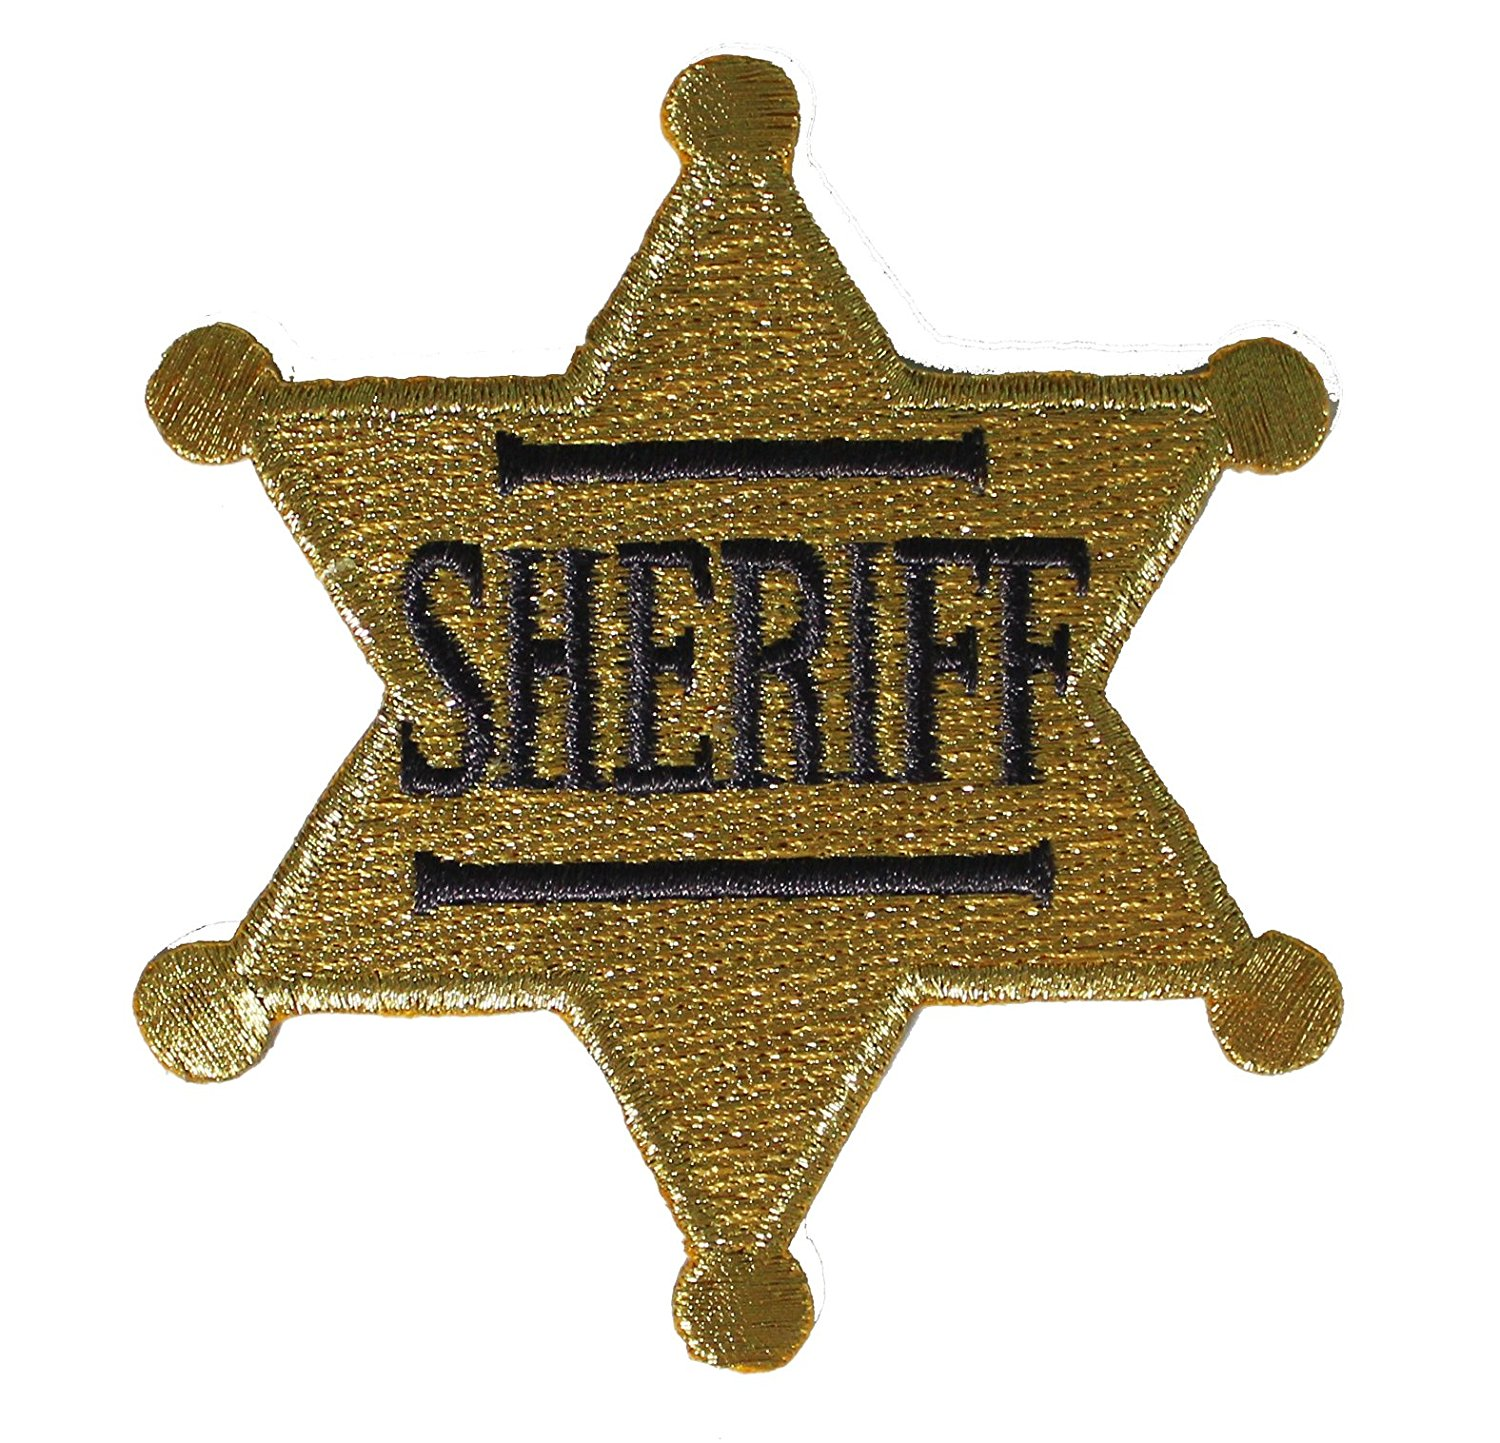 Western & Country Themed CDX Sheriff Badge PATCH - Officially Licensed Original Artwork, 2.75' x 3', Iron-On / Sew-On Embroidered Patch